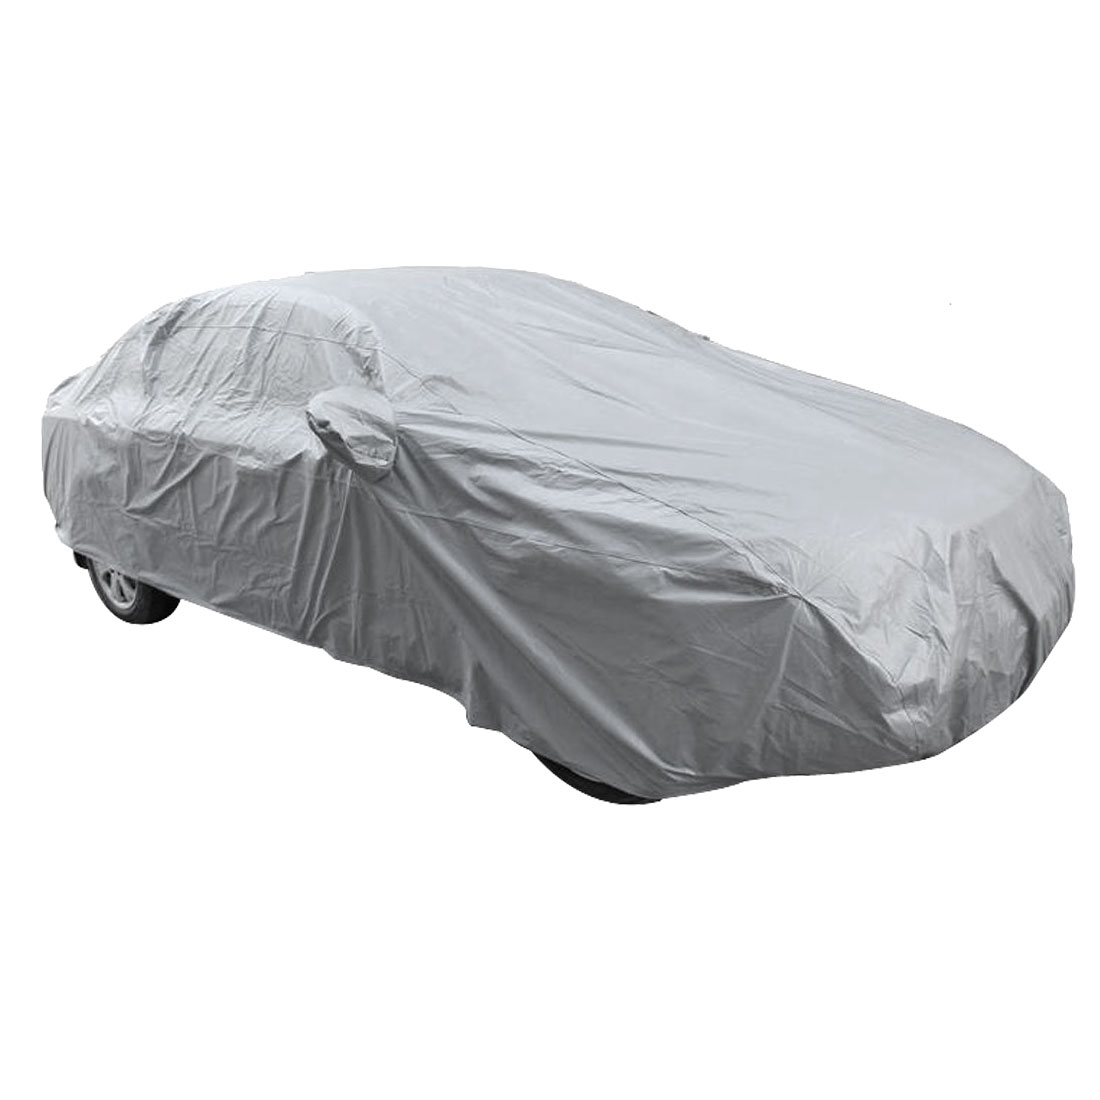 Gray Non-woven Anti-dust Sun Rain Resistant Car Cover Protector for Nissan Qashqai